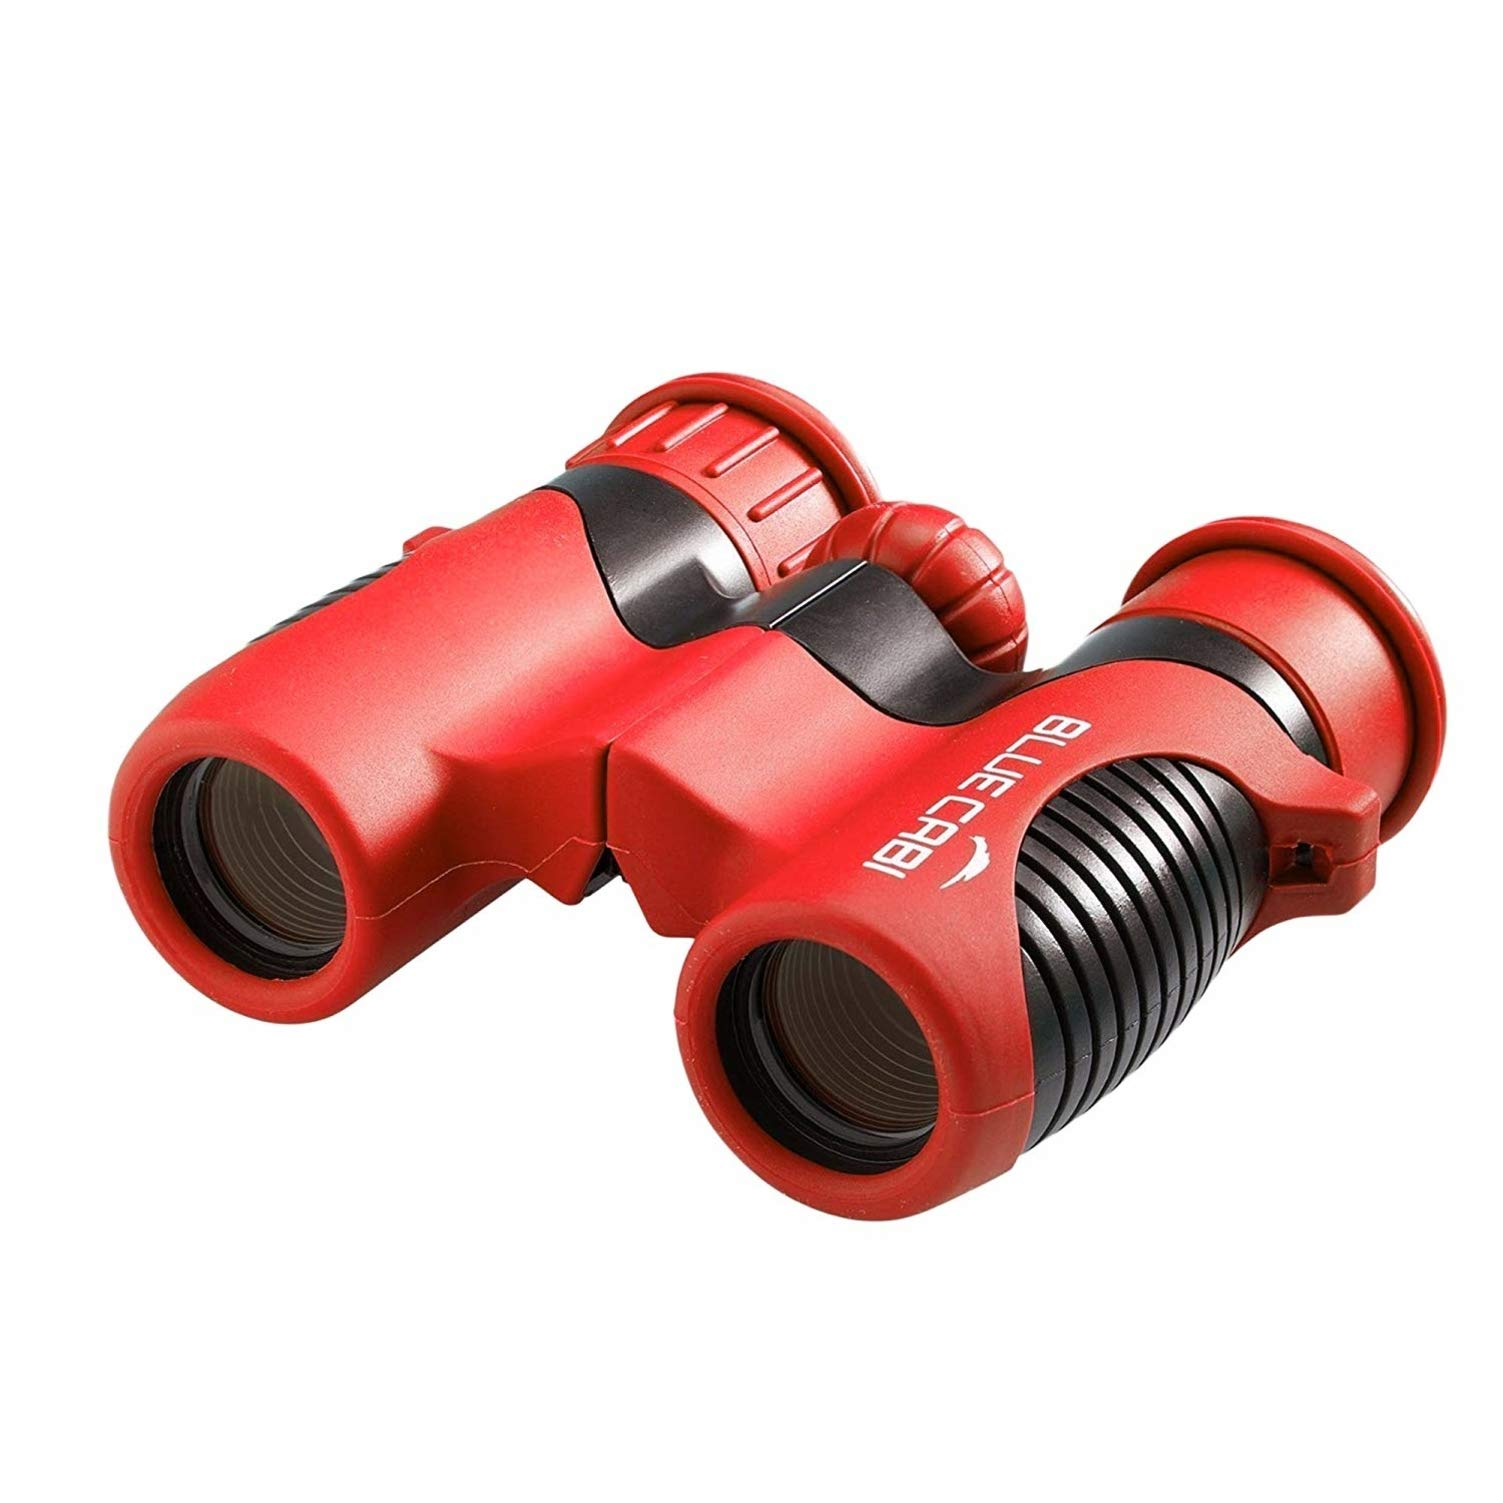 BlueCabi Shock Proof 8x21 Kids Binoculars - High Resolution Real Optics Childrens Compact Binocular Set - Great for Science, Bird Watching, Outdoor Play, Travel, and Gifts for Boys & Girls by BlueCabi